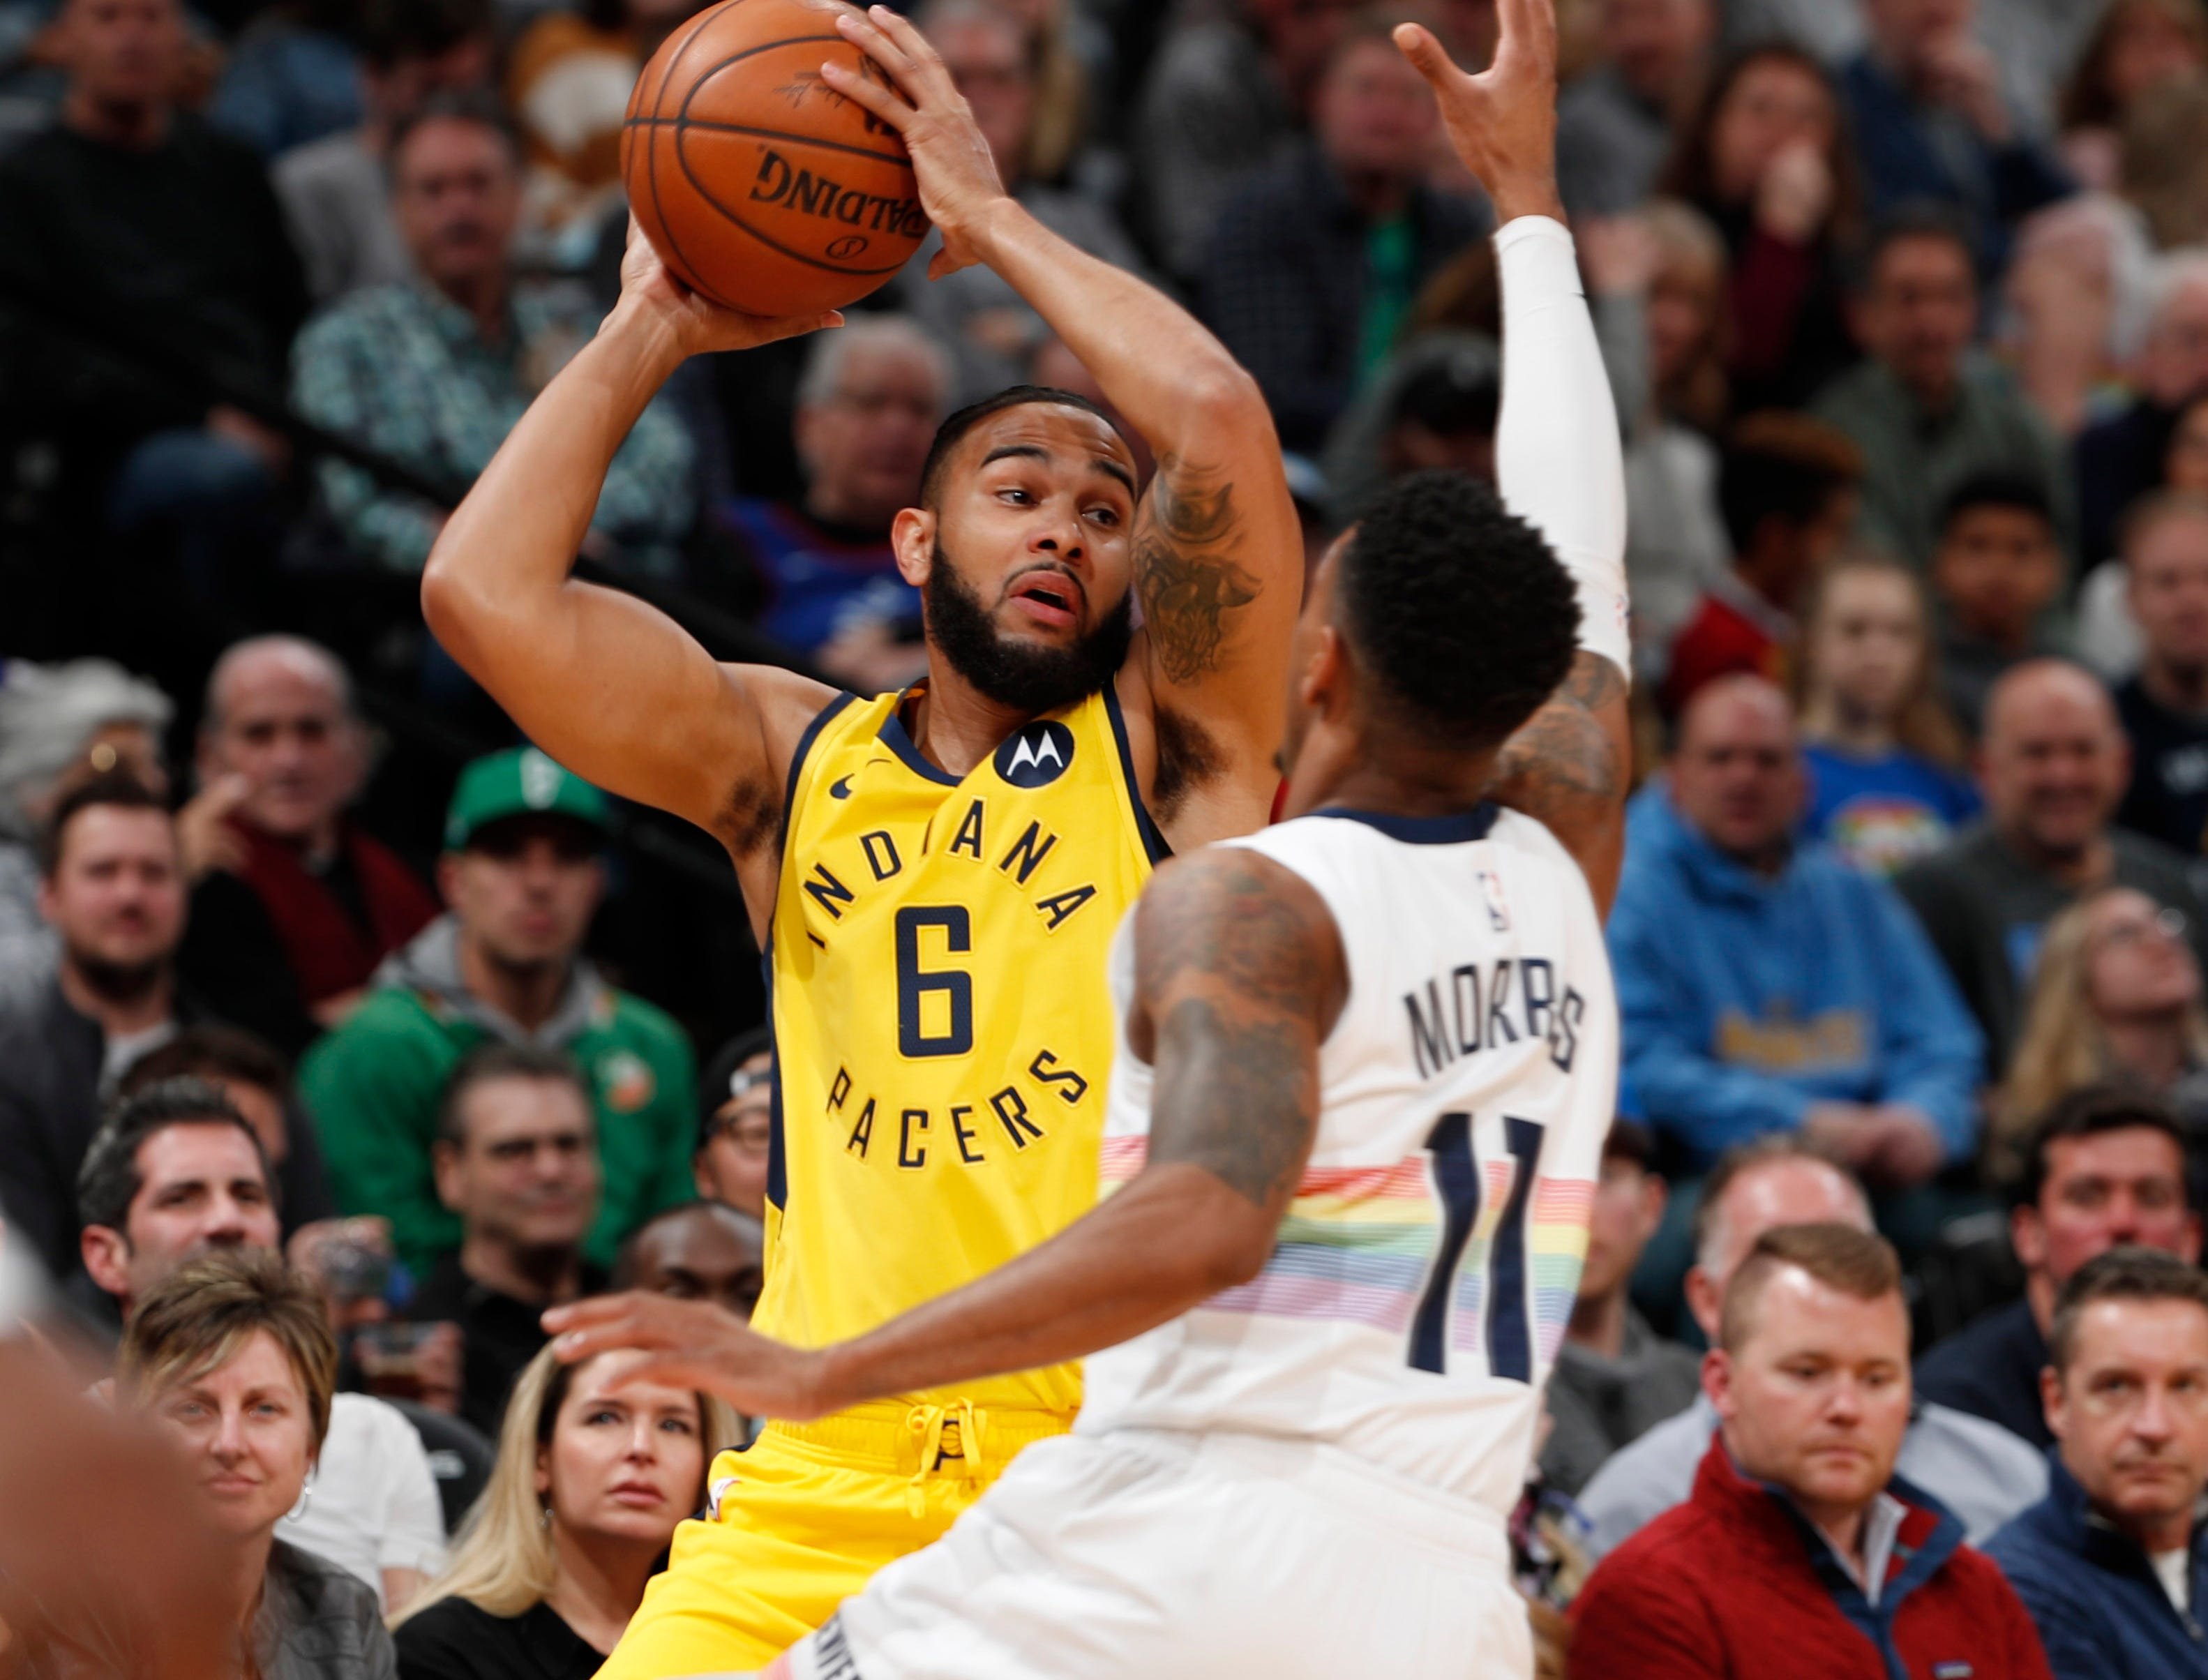 Indiana Pacers guard Cory Joseph, back, looks to pass the ball under pressure from Denver Nuggets guard Monte Morris during the first half of an NBA basketball game Saturday, March 16, 2019, in Denver. (AP Photo/David Zalubowski)